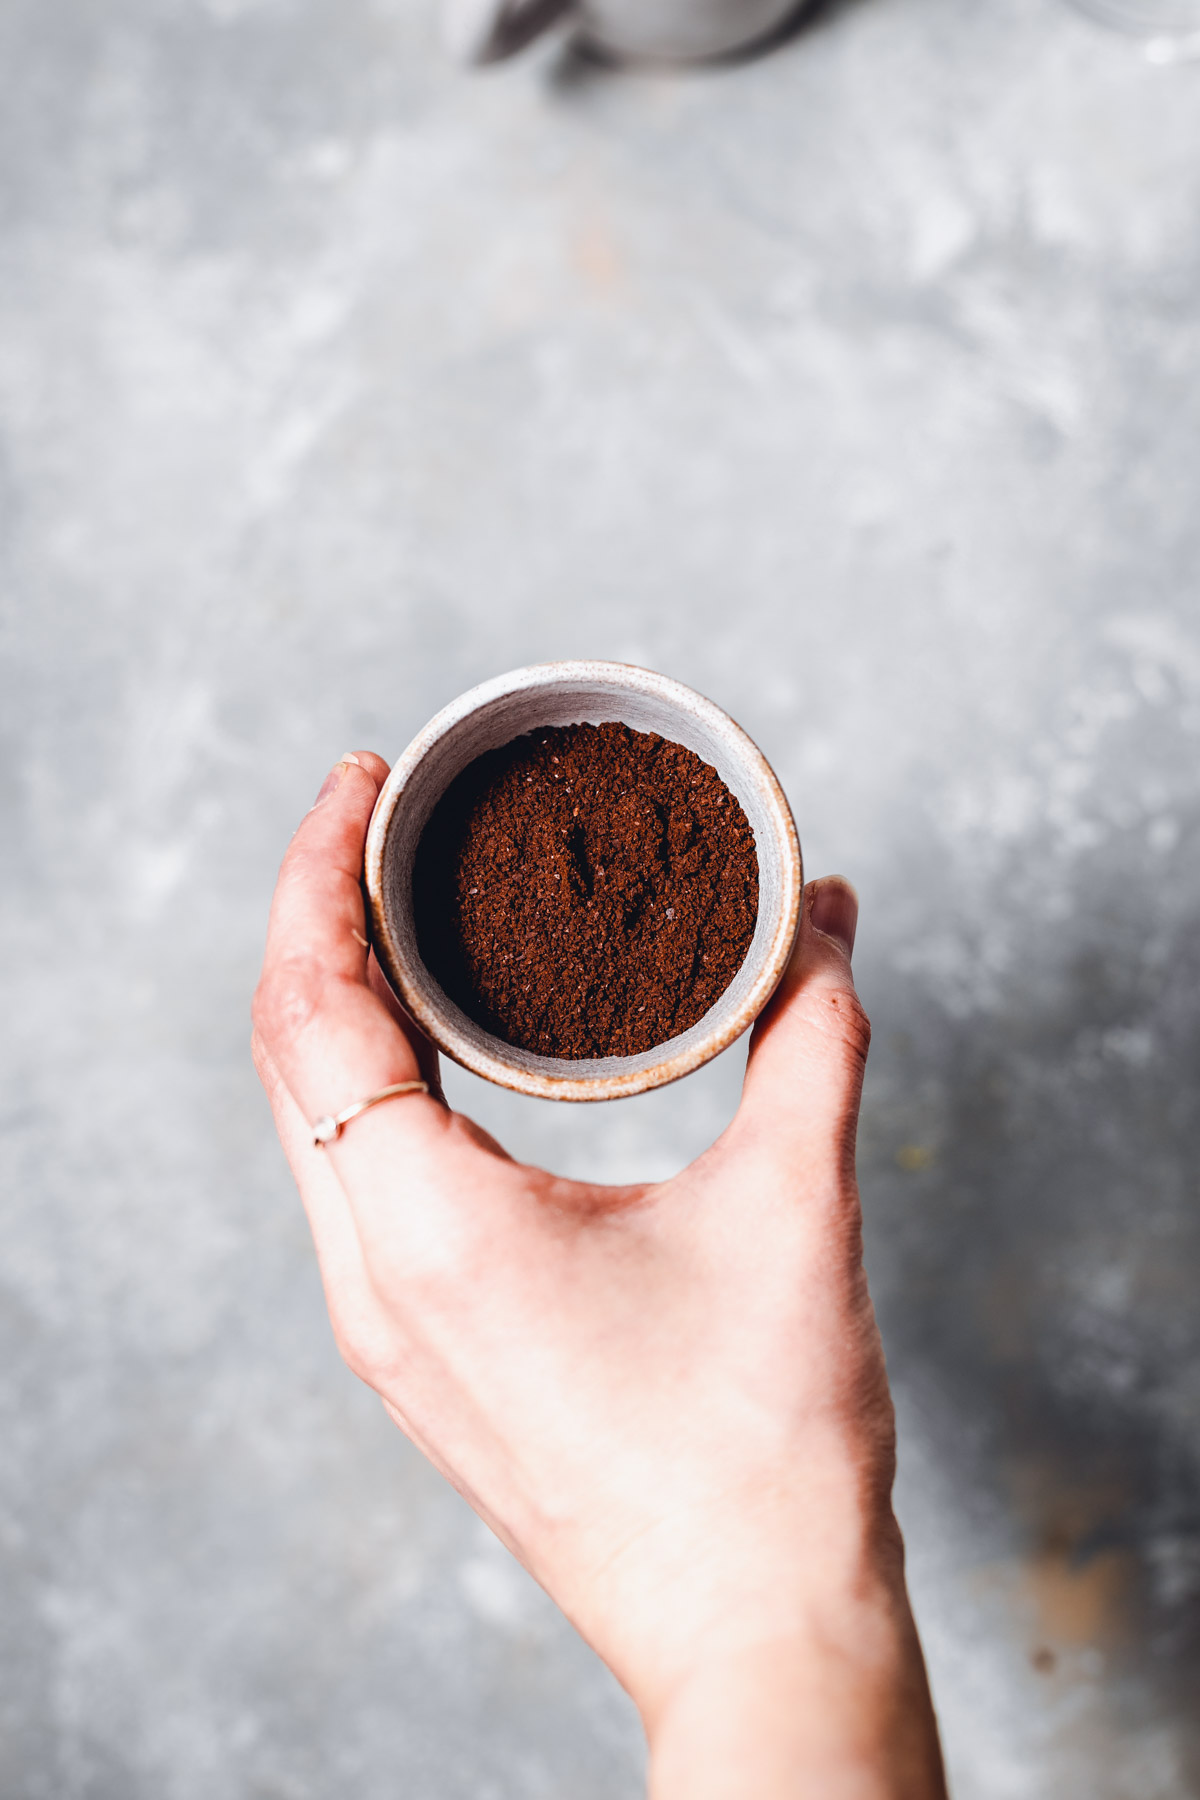 A hand holding a small bowl filled with ground coffee.